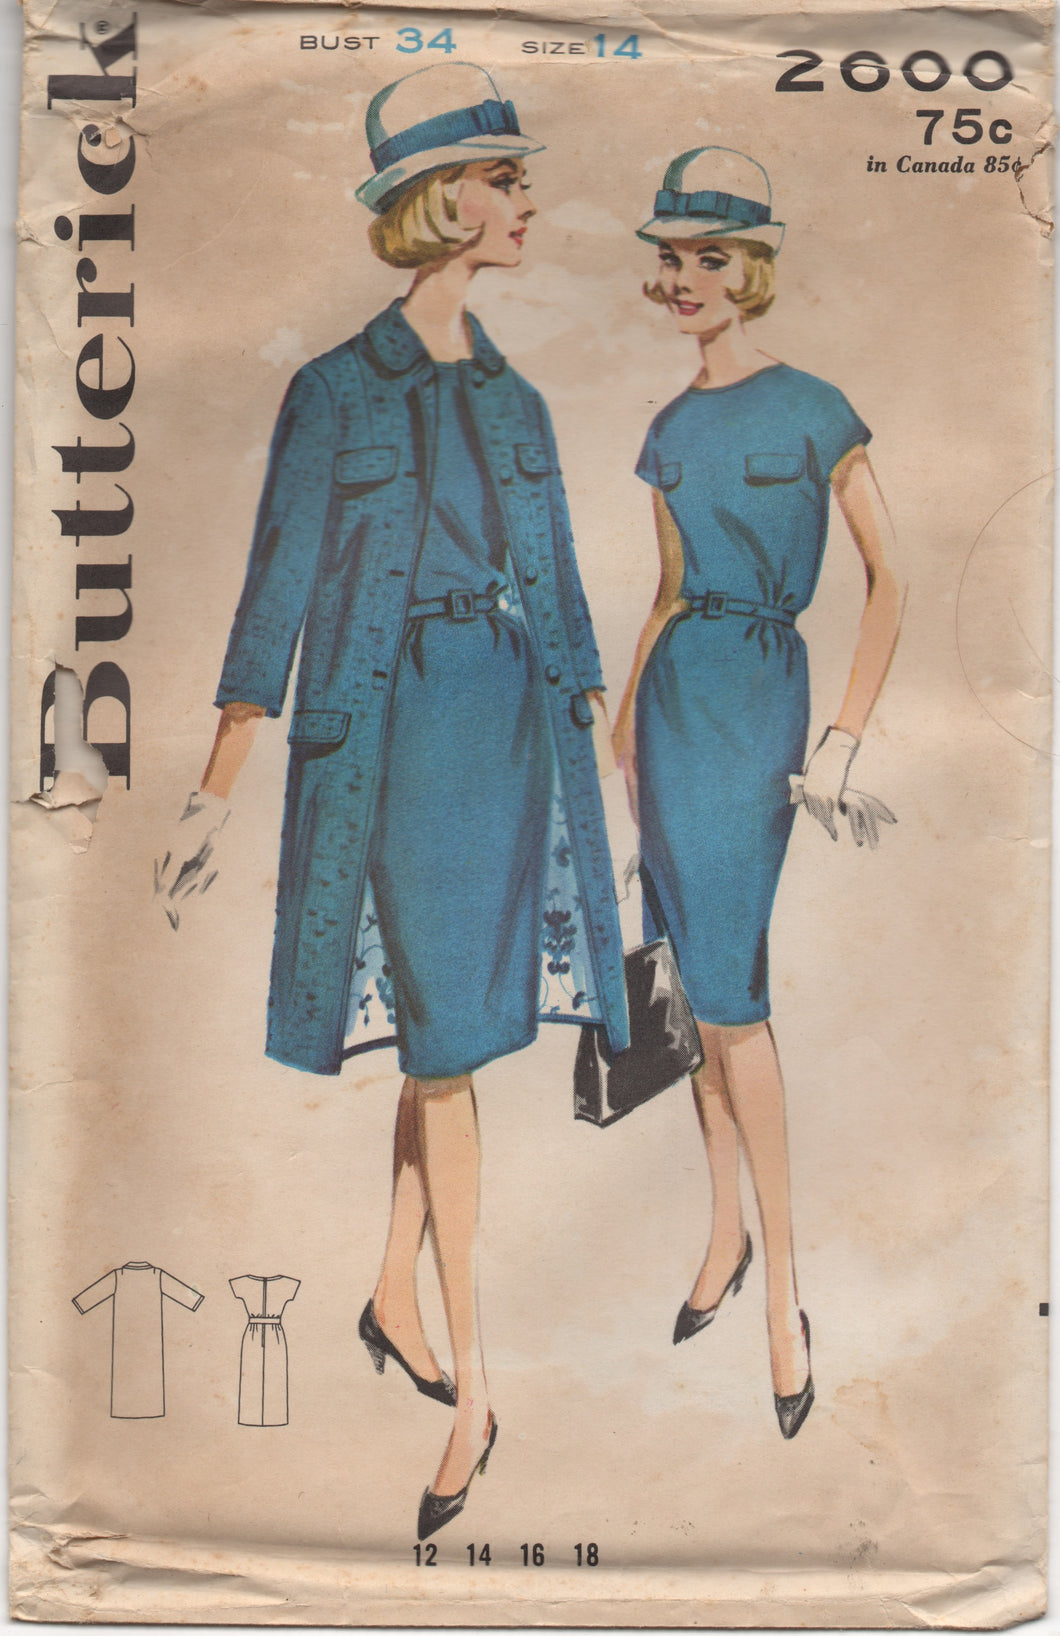 1960's Butterick One Piece Wiggle Dress with Accents and Coat - Bust 34